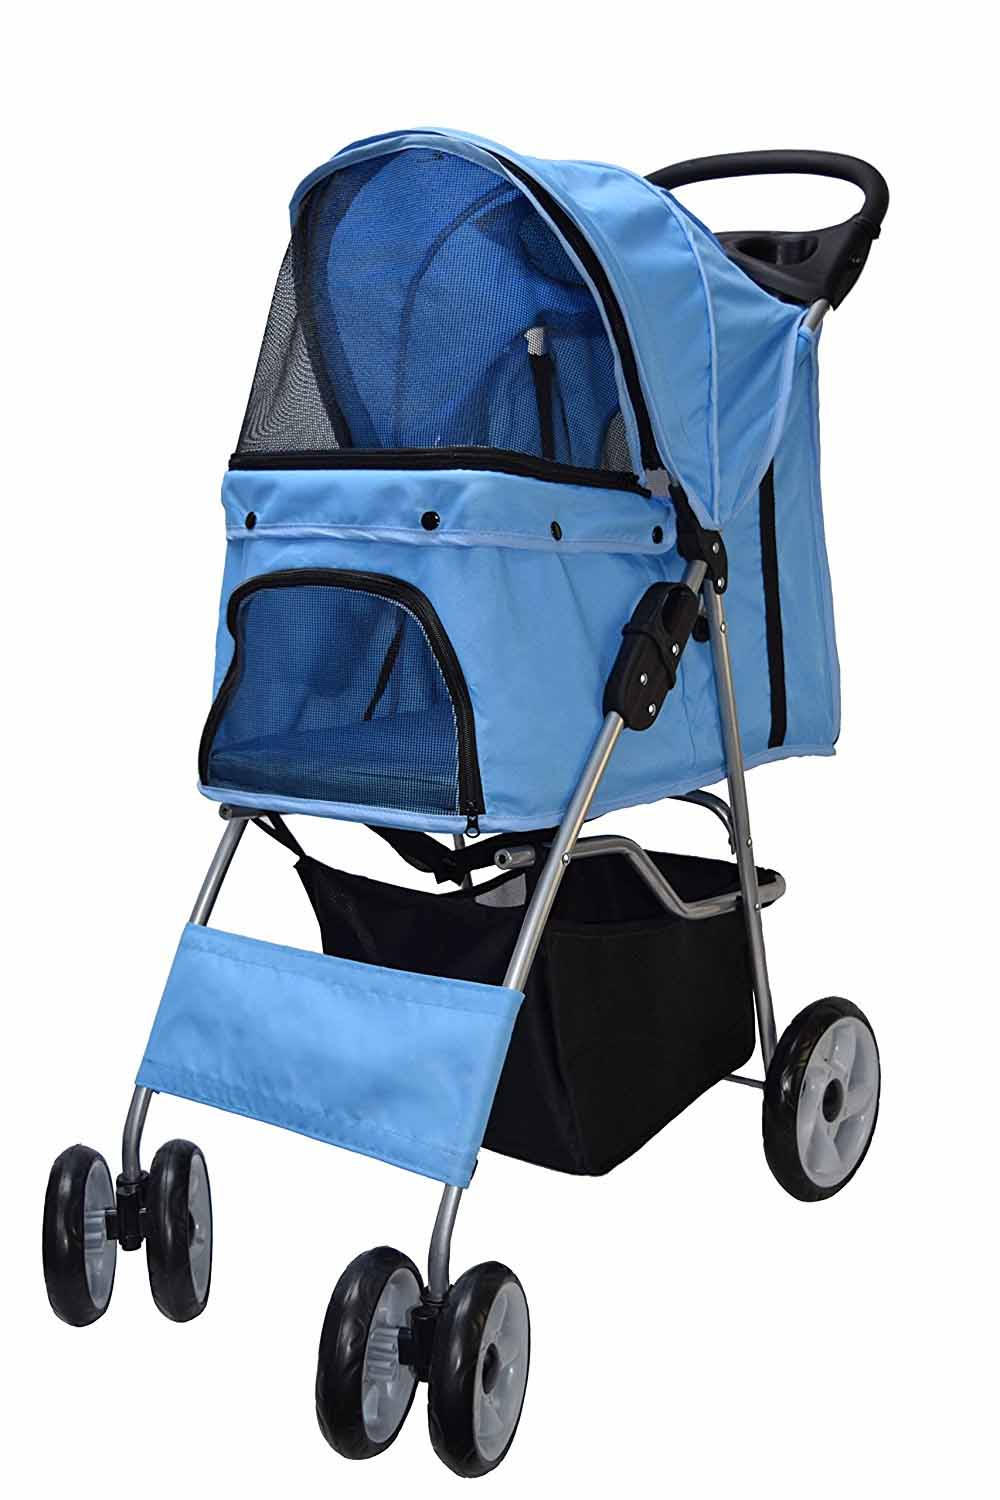 Advantages of Cat Strollers